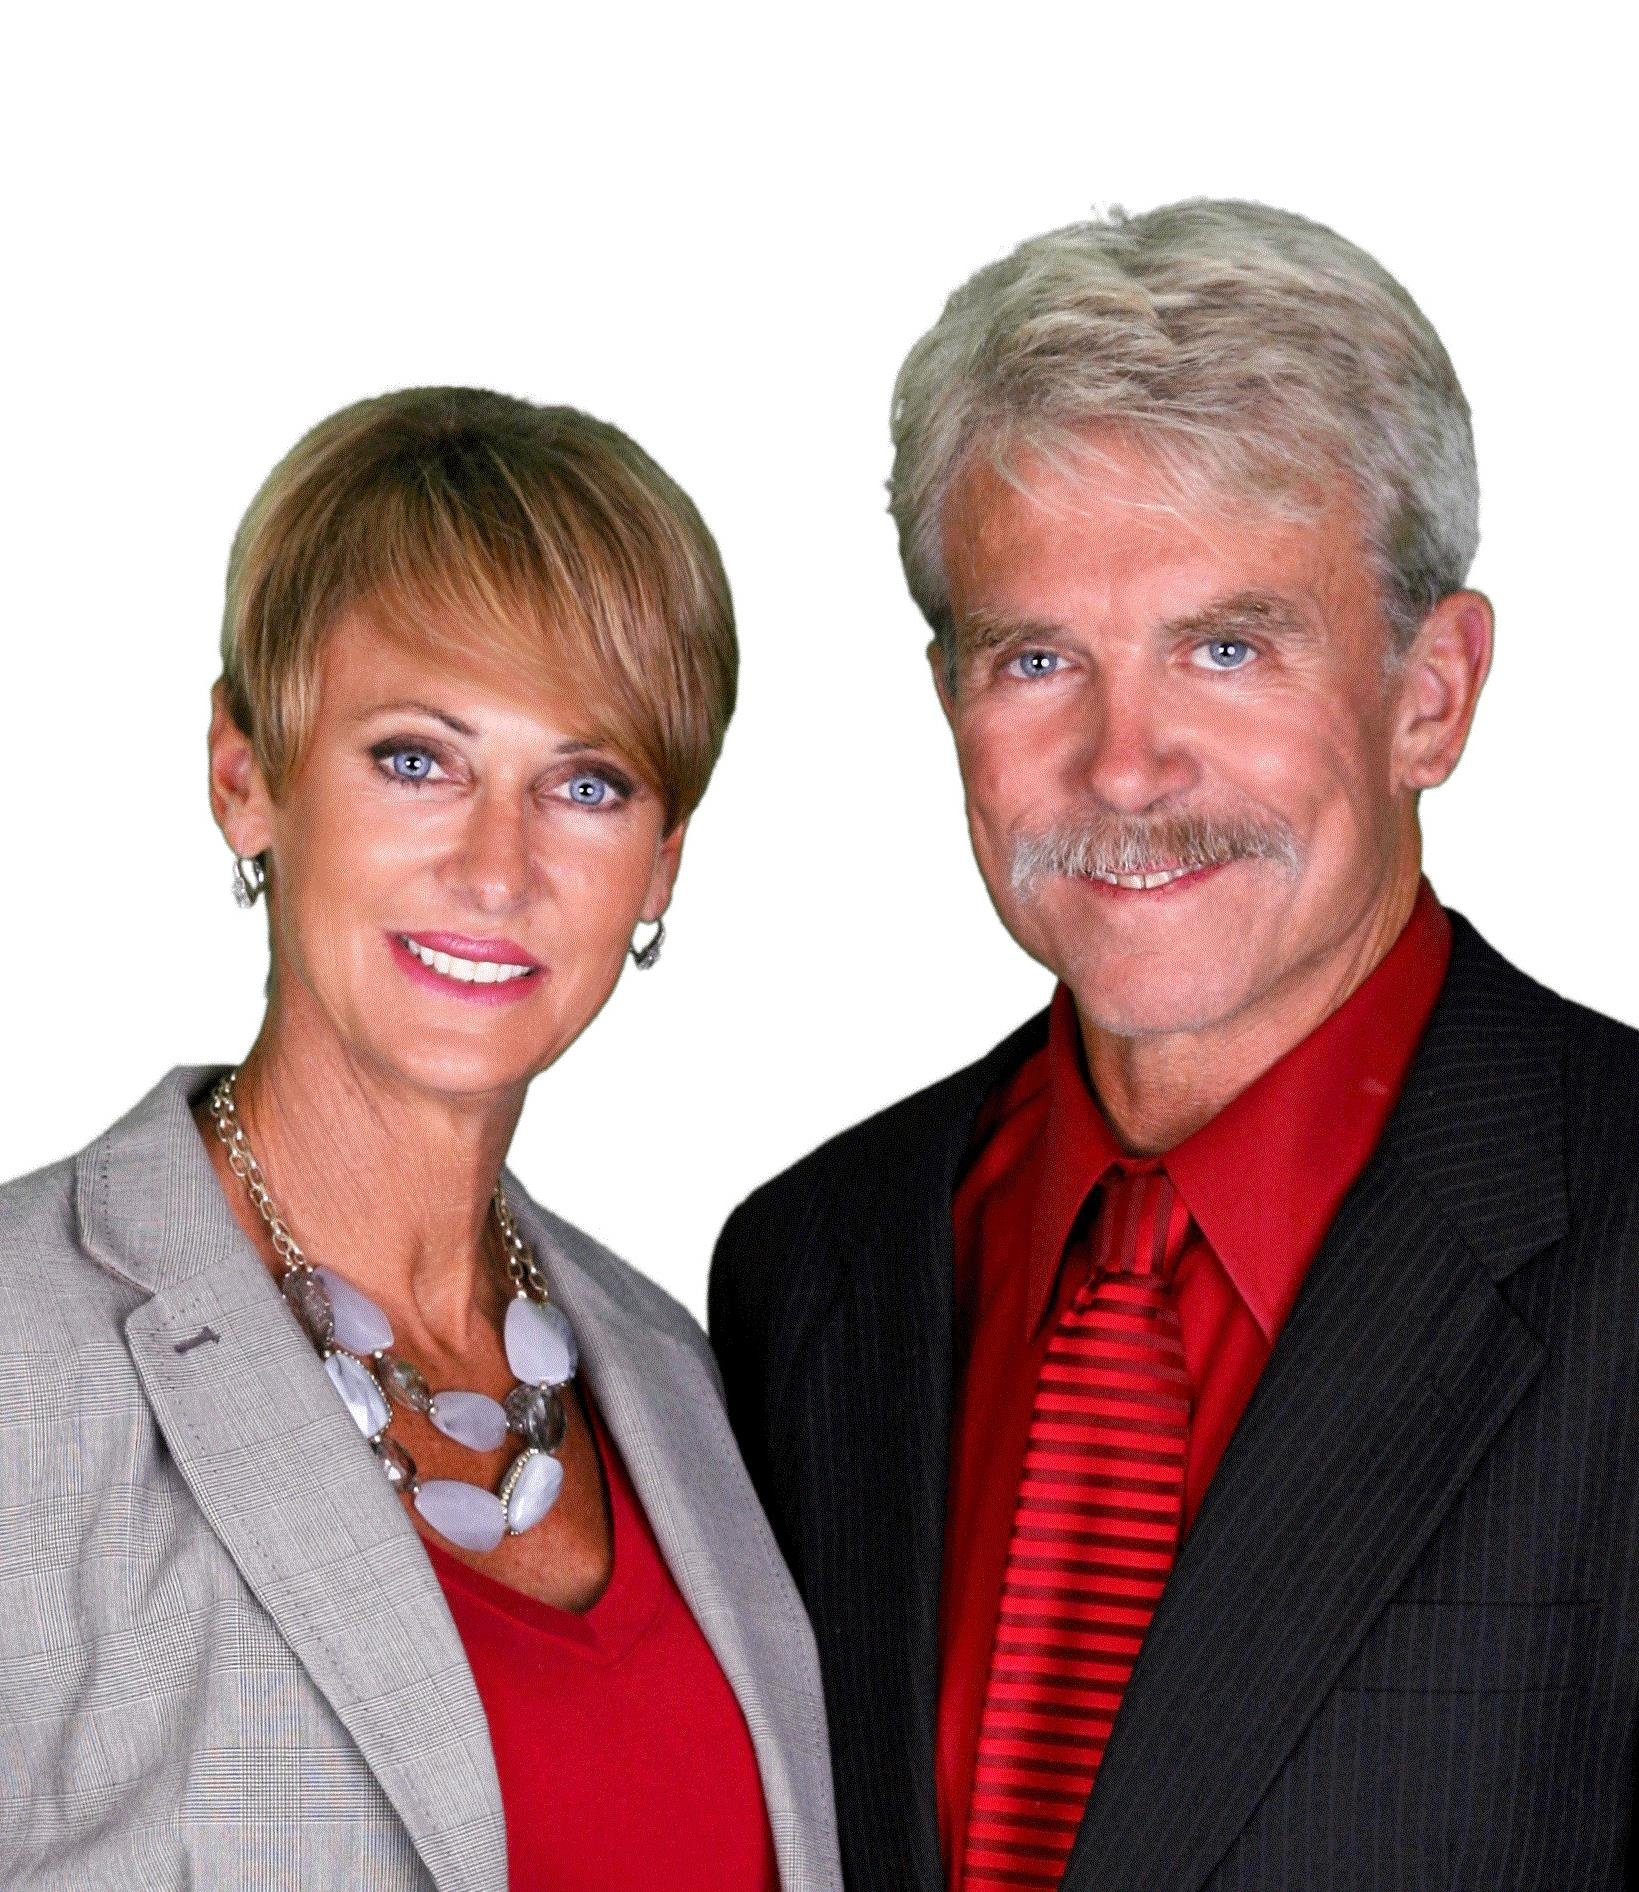 Jennifer and Kris Jennifer and Kris is a licensed real estate agent in Orlando FL